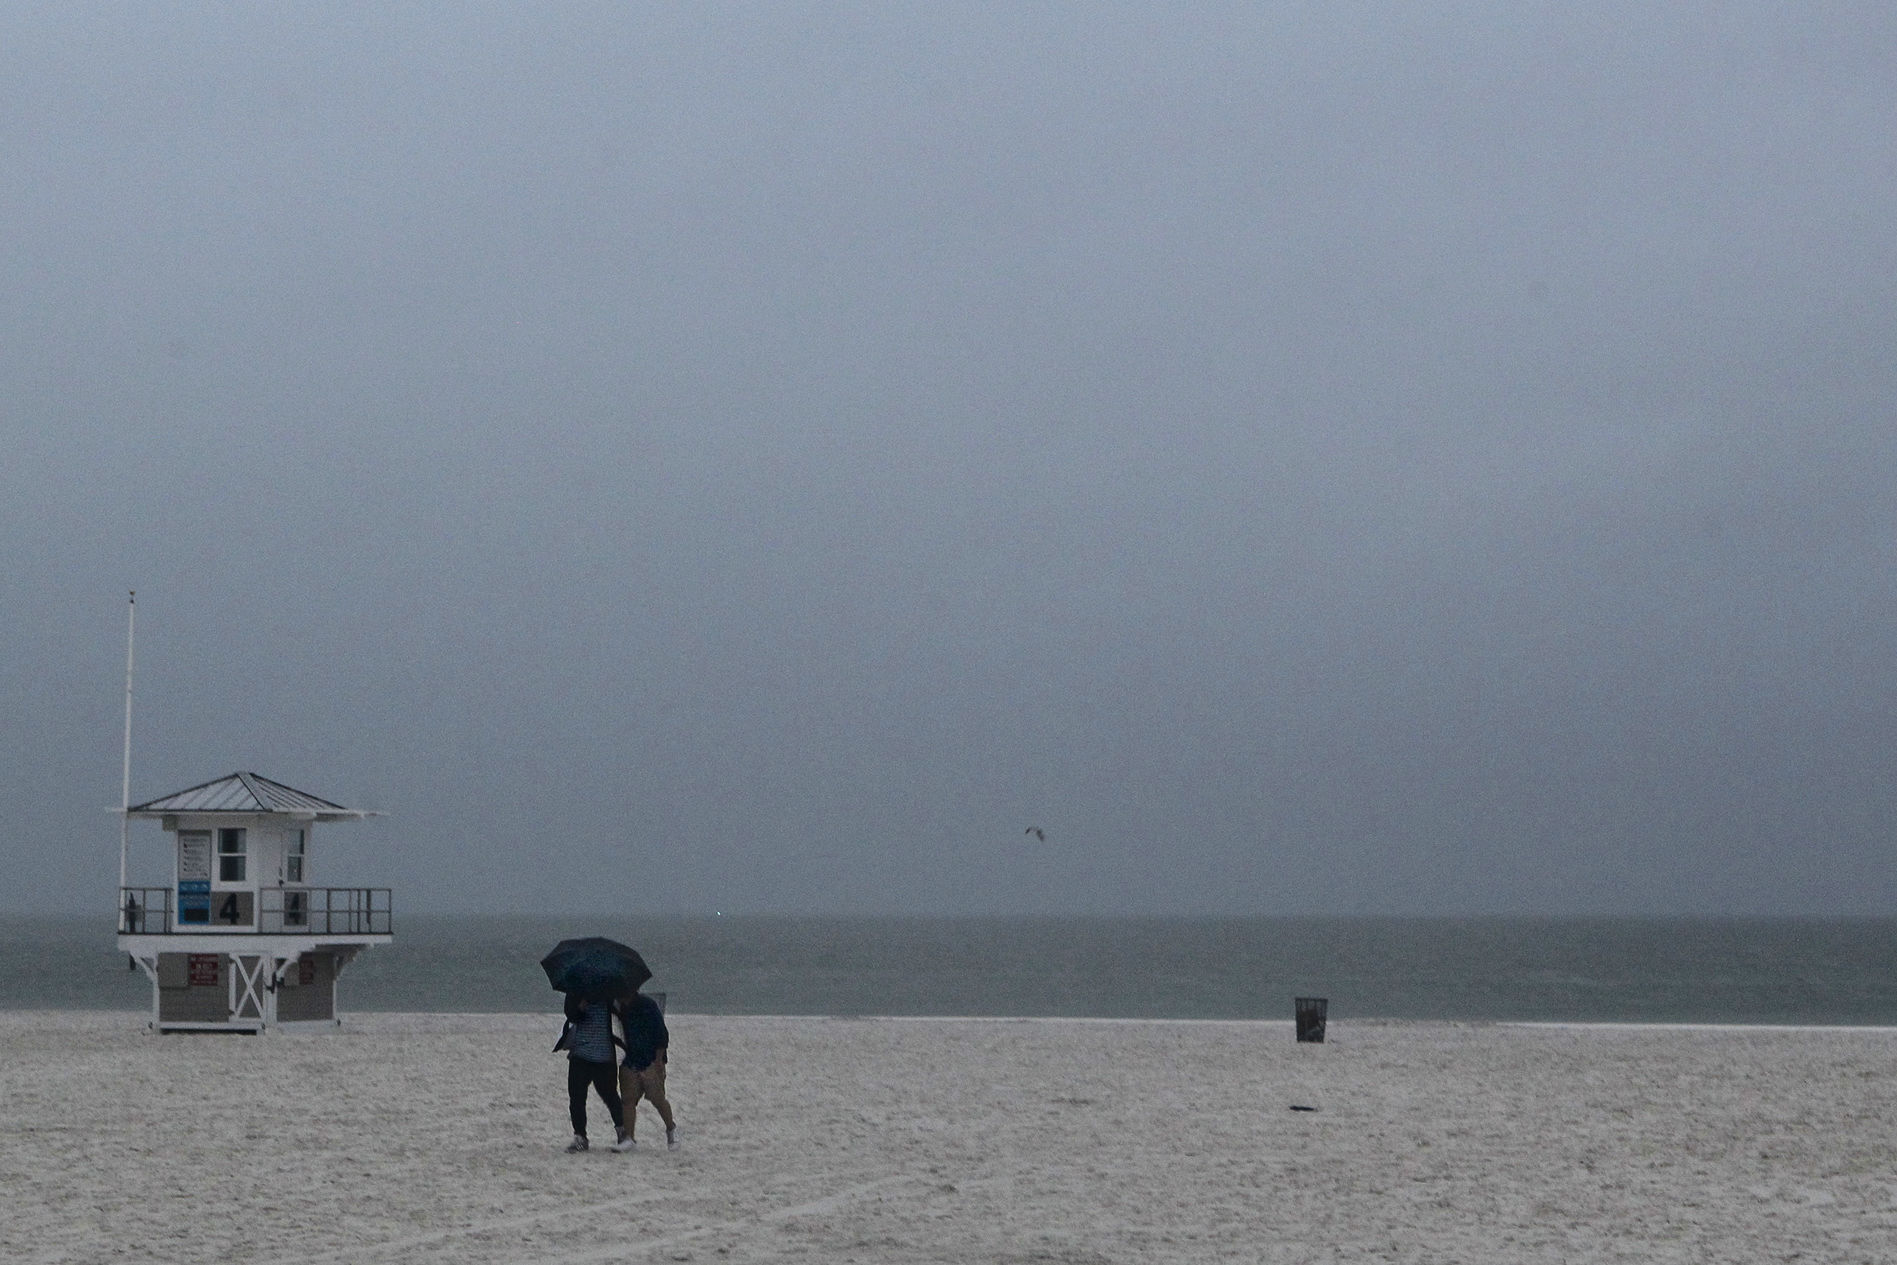 Lightning Strikes Florida Beach Leaving 8 Injured: Report